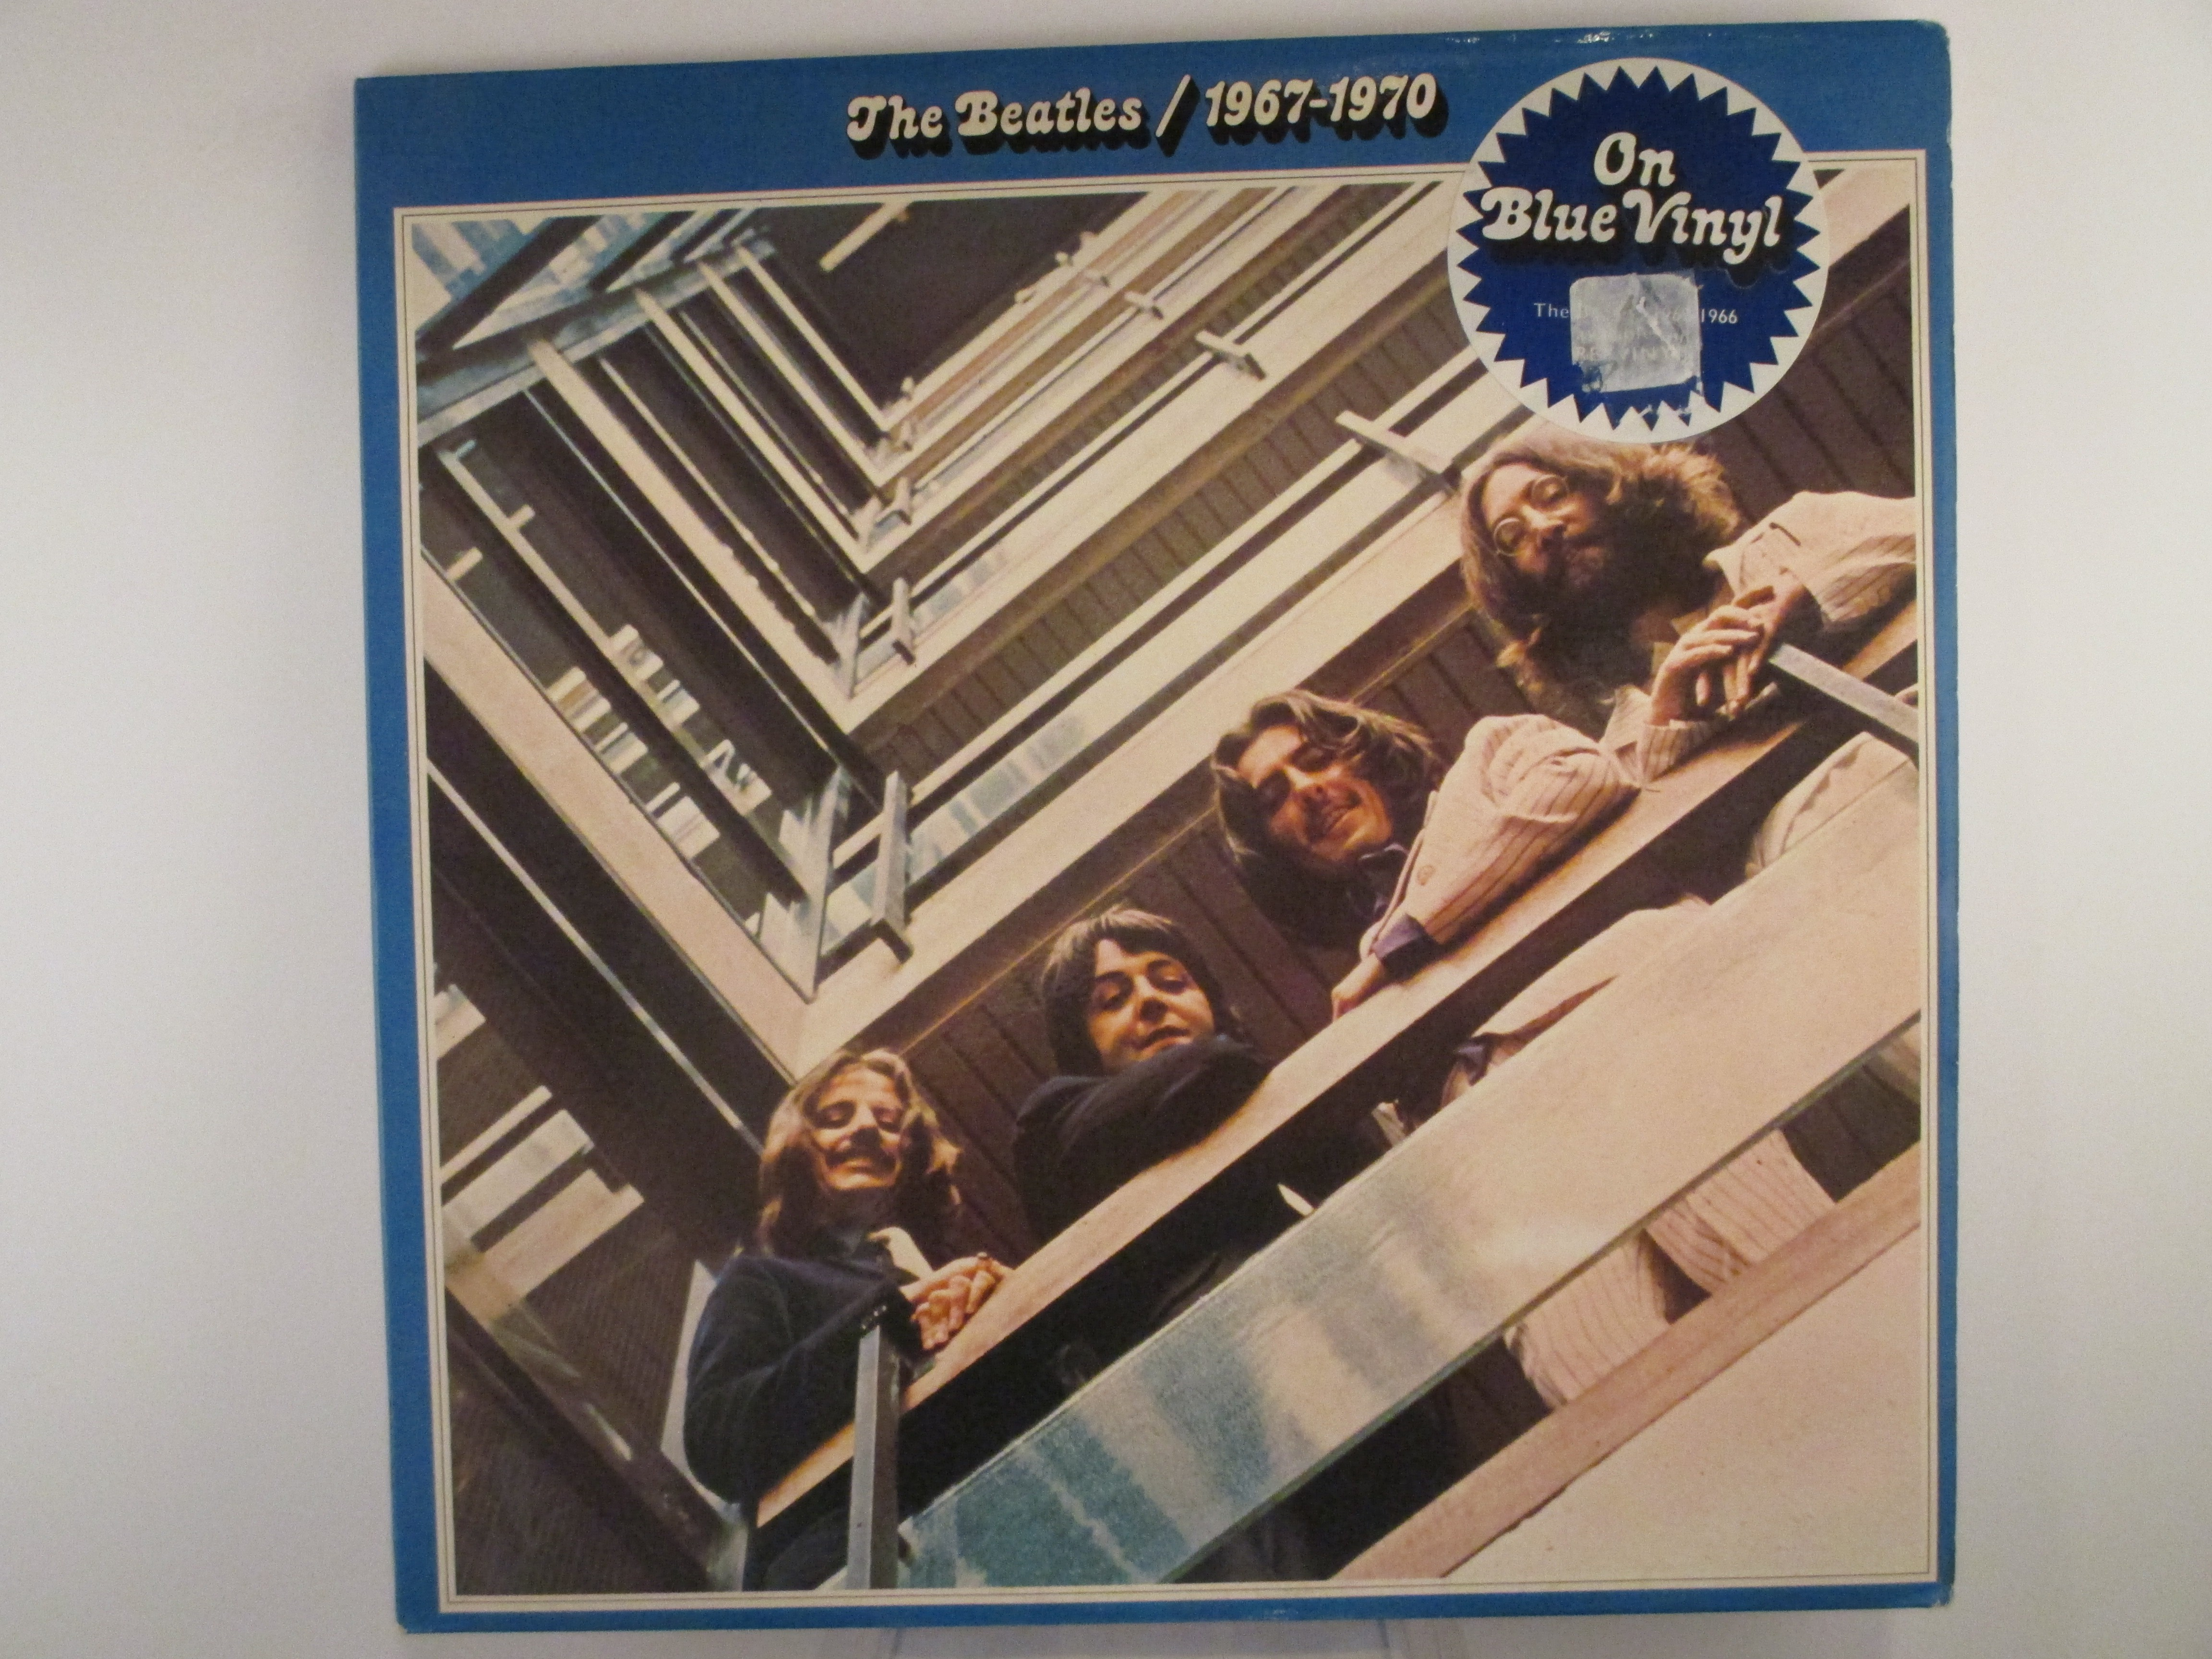 """BEATLES The : """"The Beatles / 1967-1970"""""""